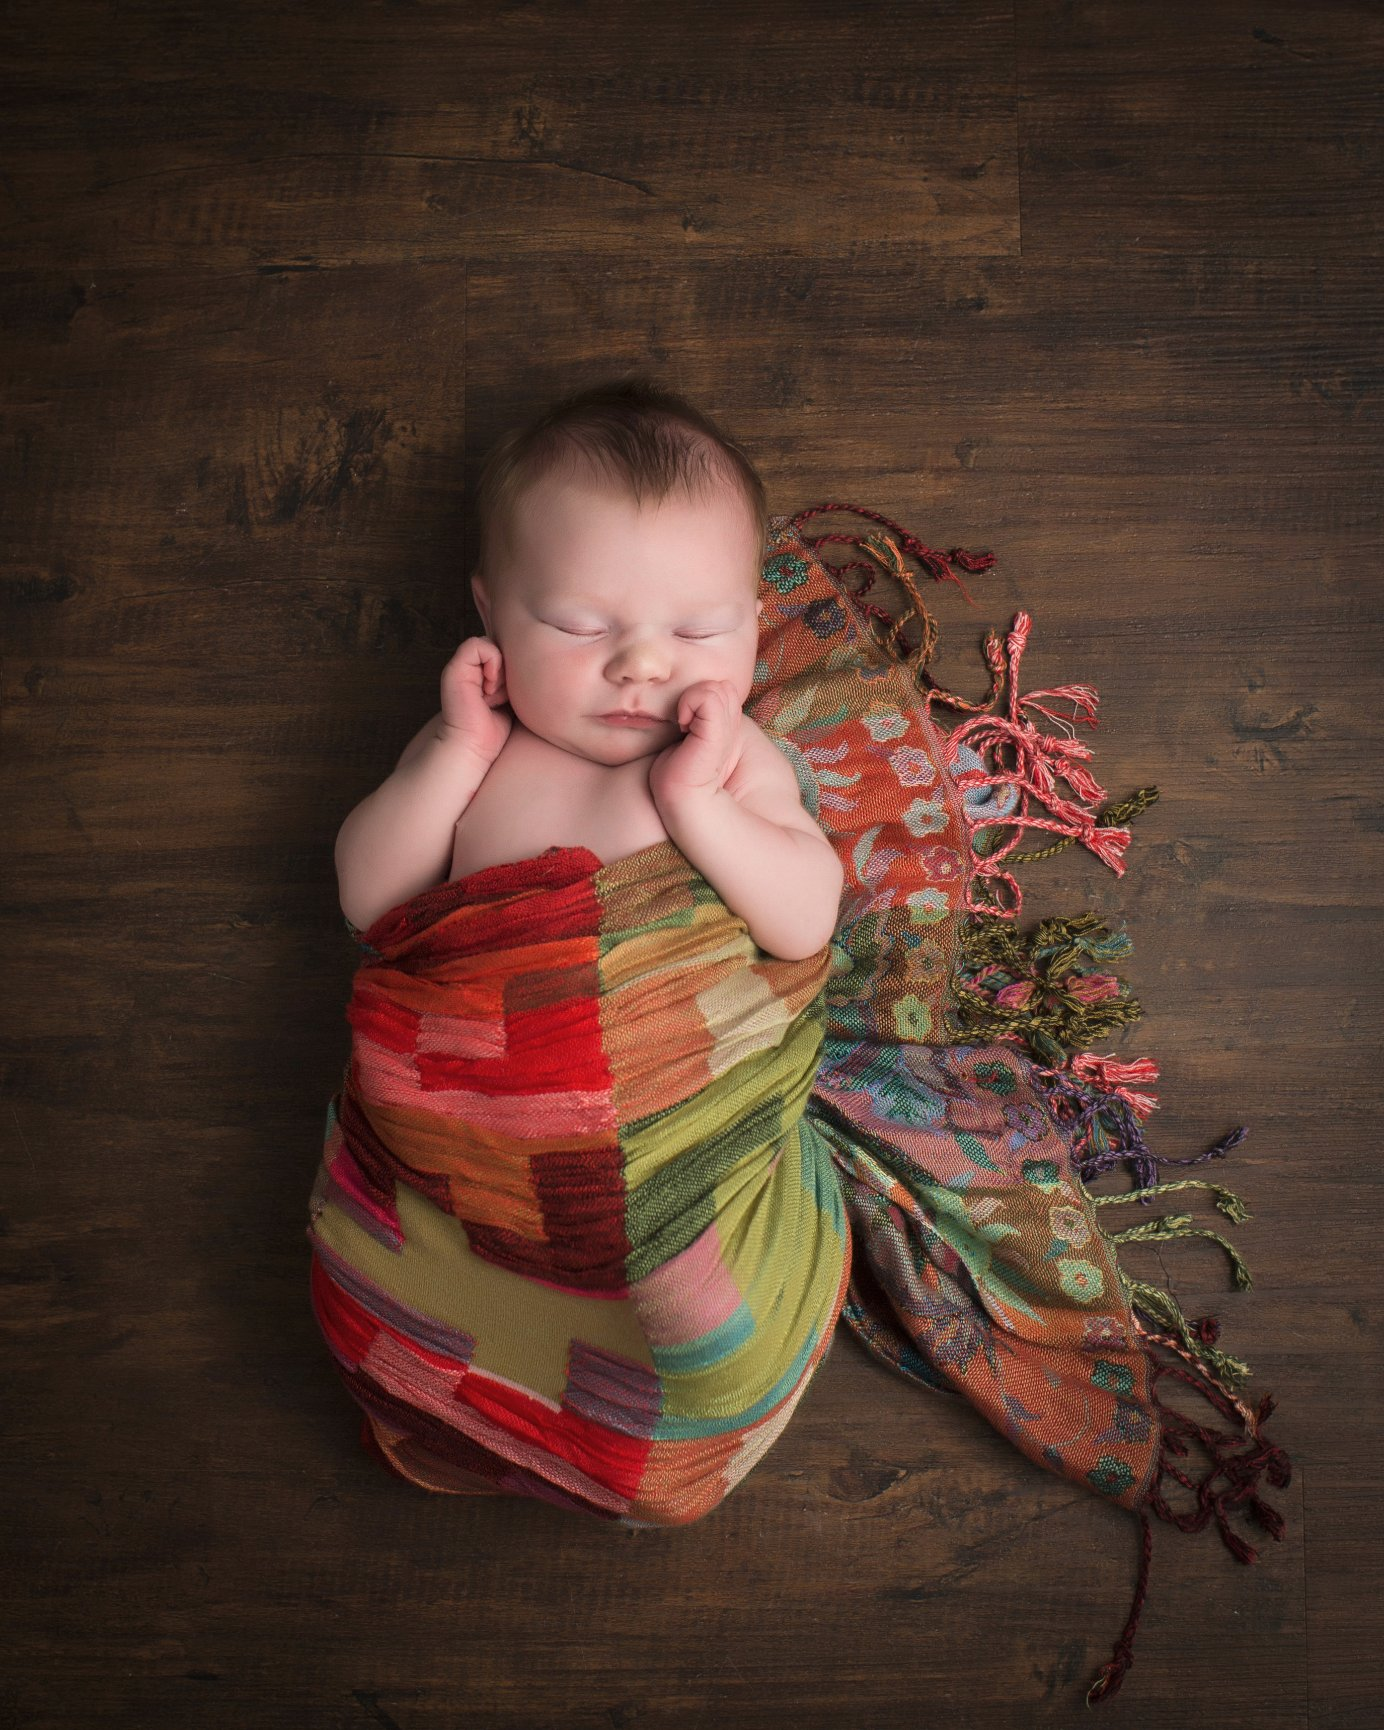 We specialize in artistic newborn portraits that look great on any wall of your home not just the nursery